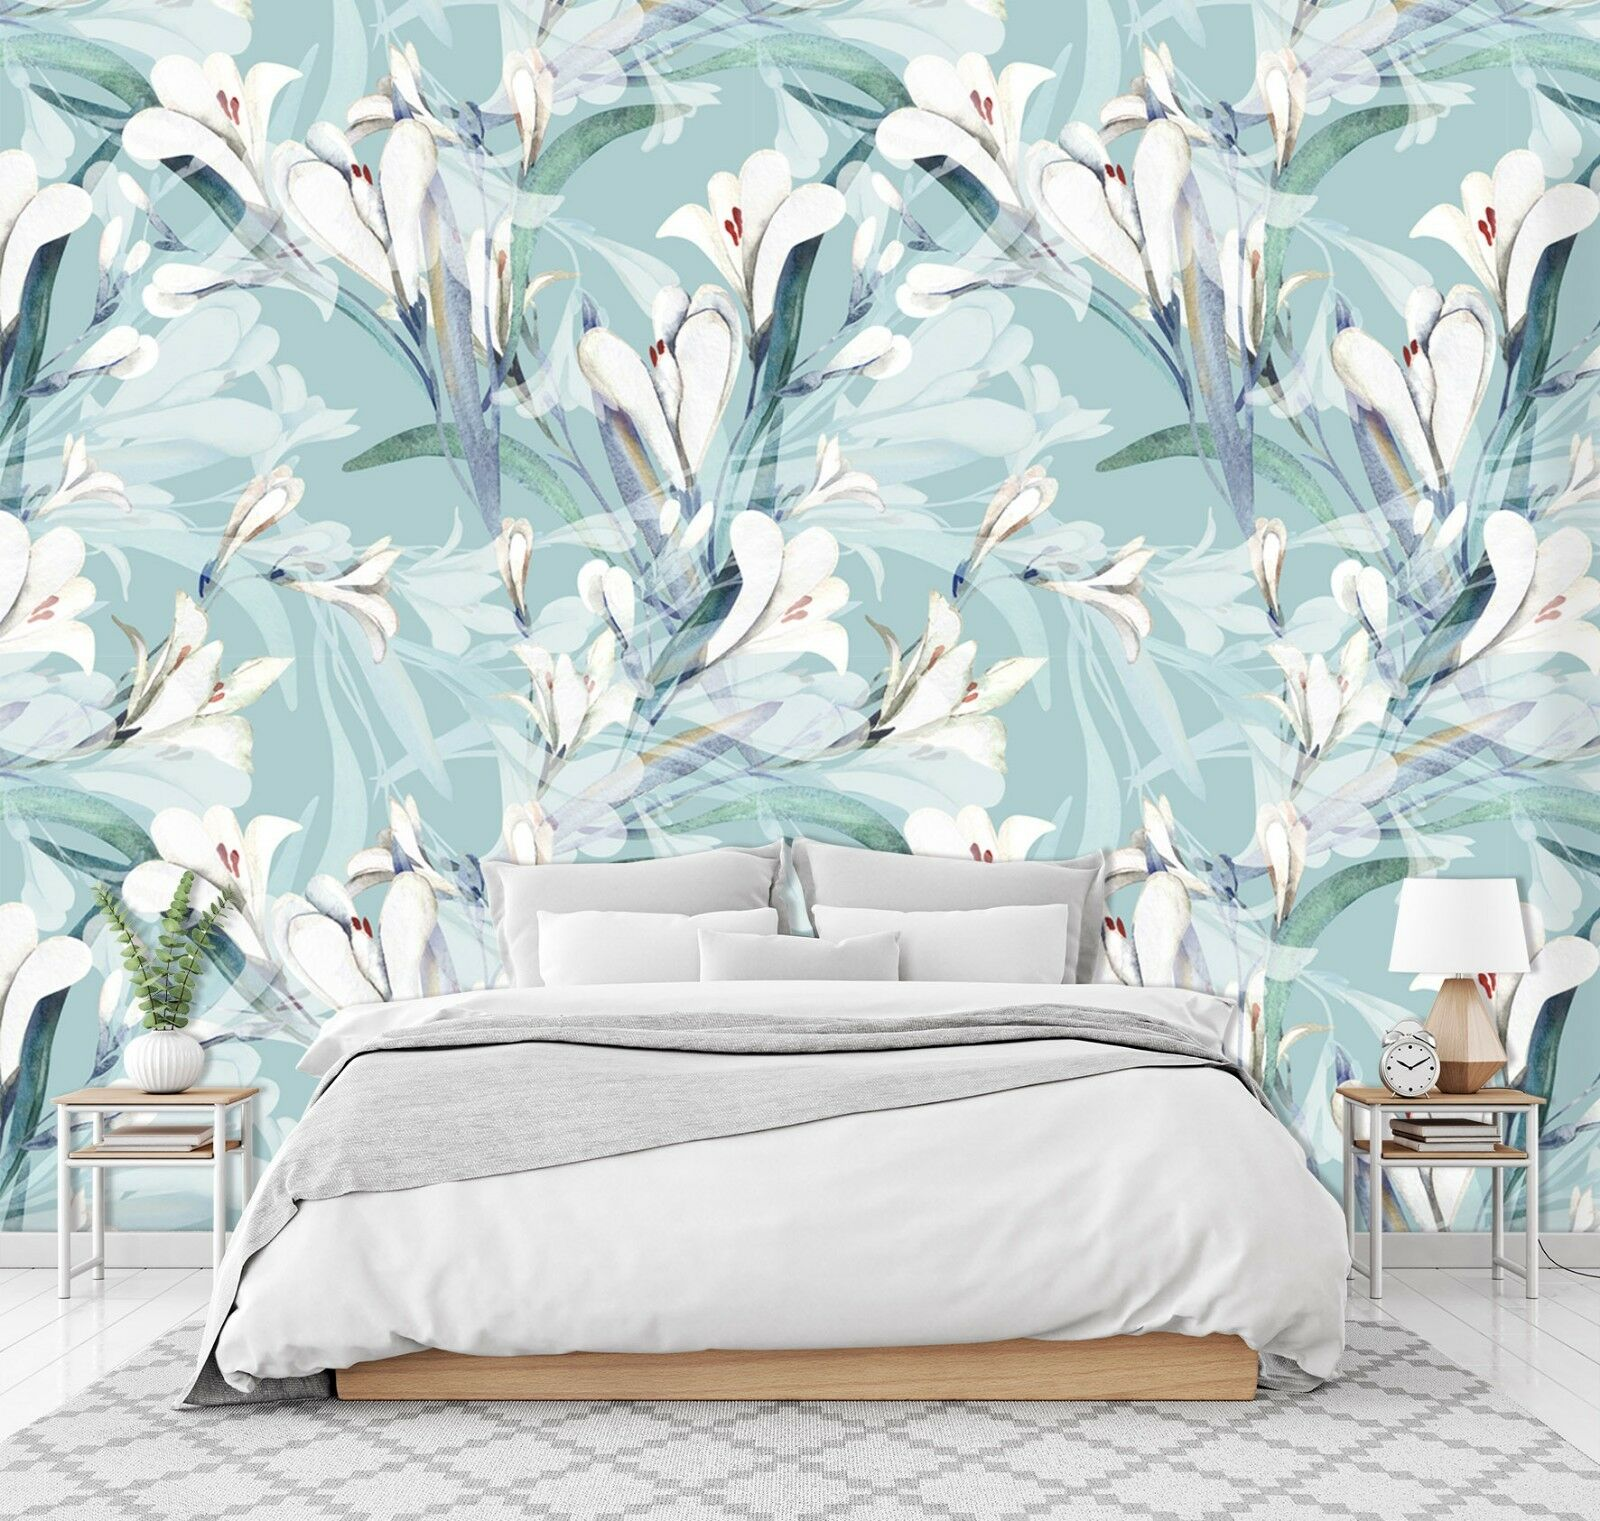 3D Lily Pattern 93 Wall Paper Exclusive MXY Wallpaper Mural Decal Indoor Wall AJ